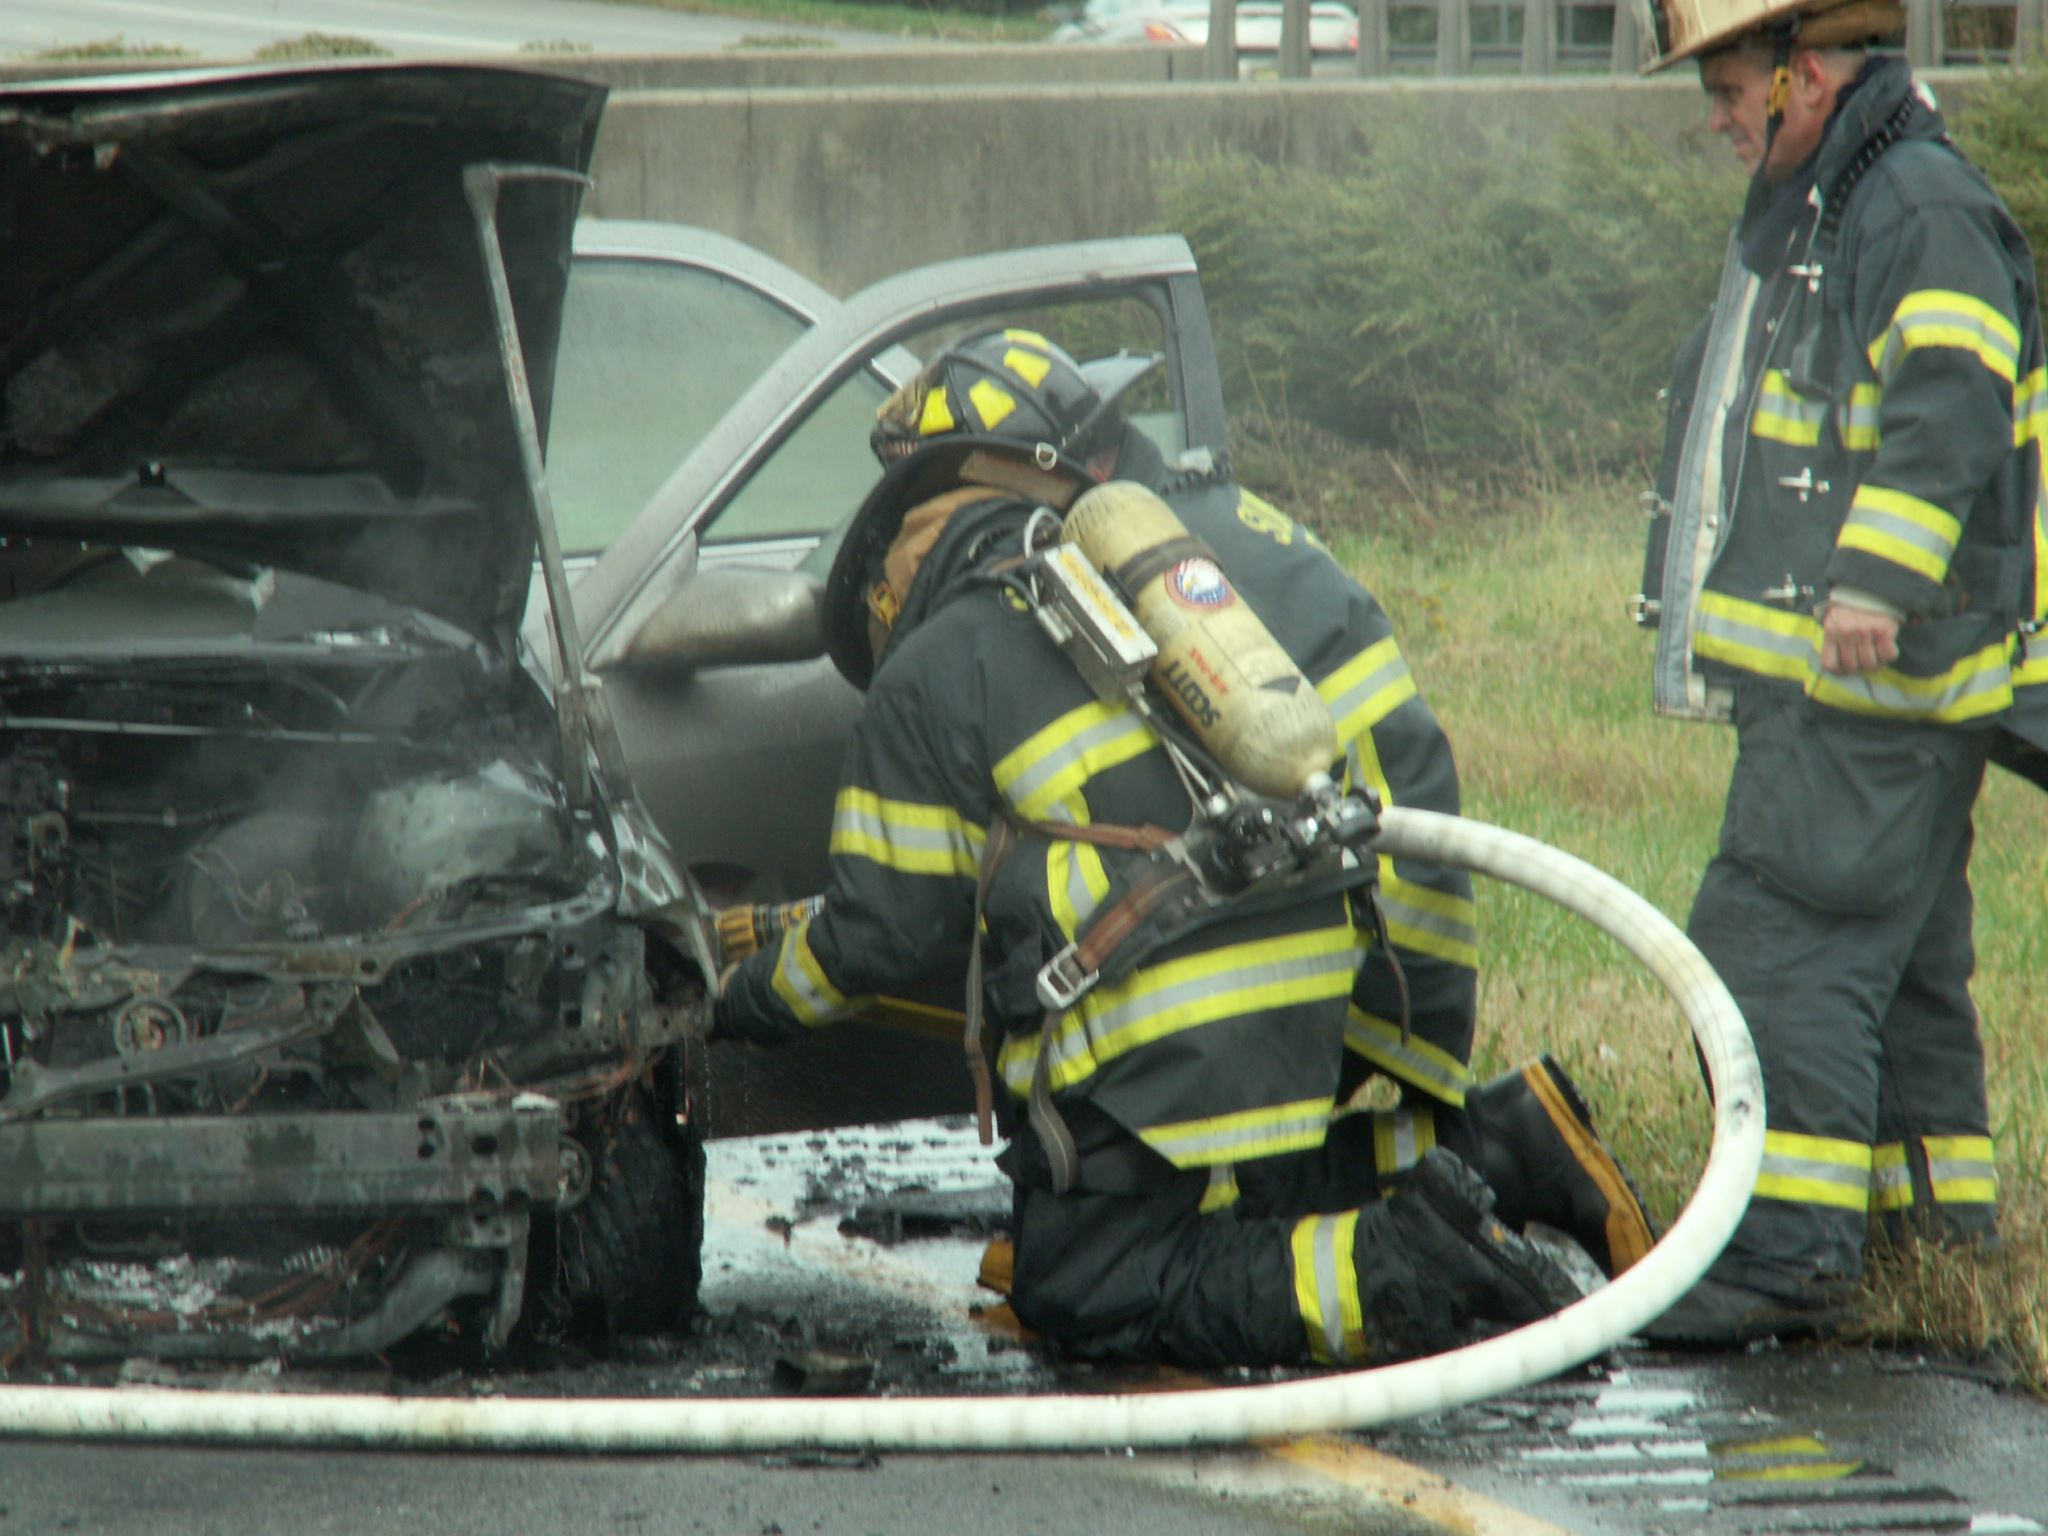 Firefighter kneeling next to car